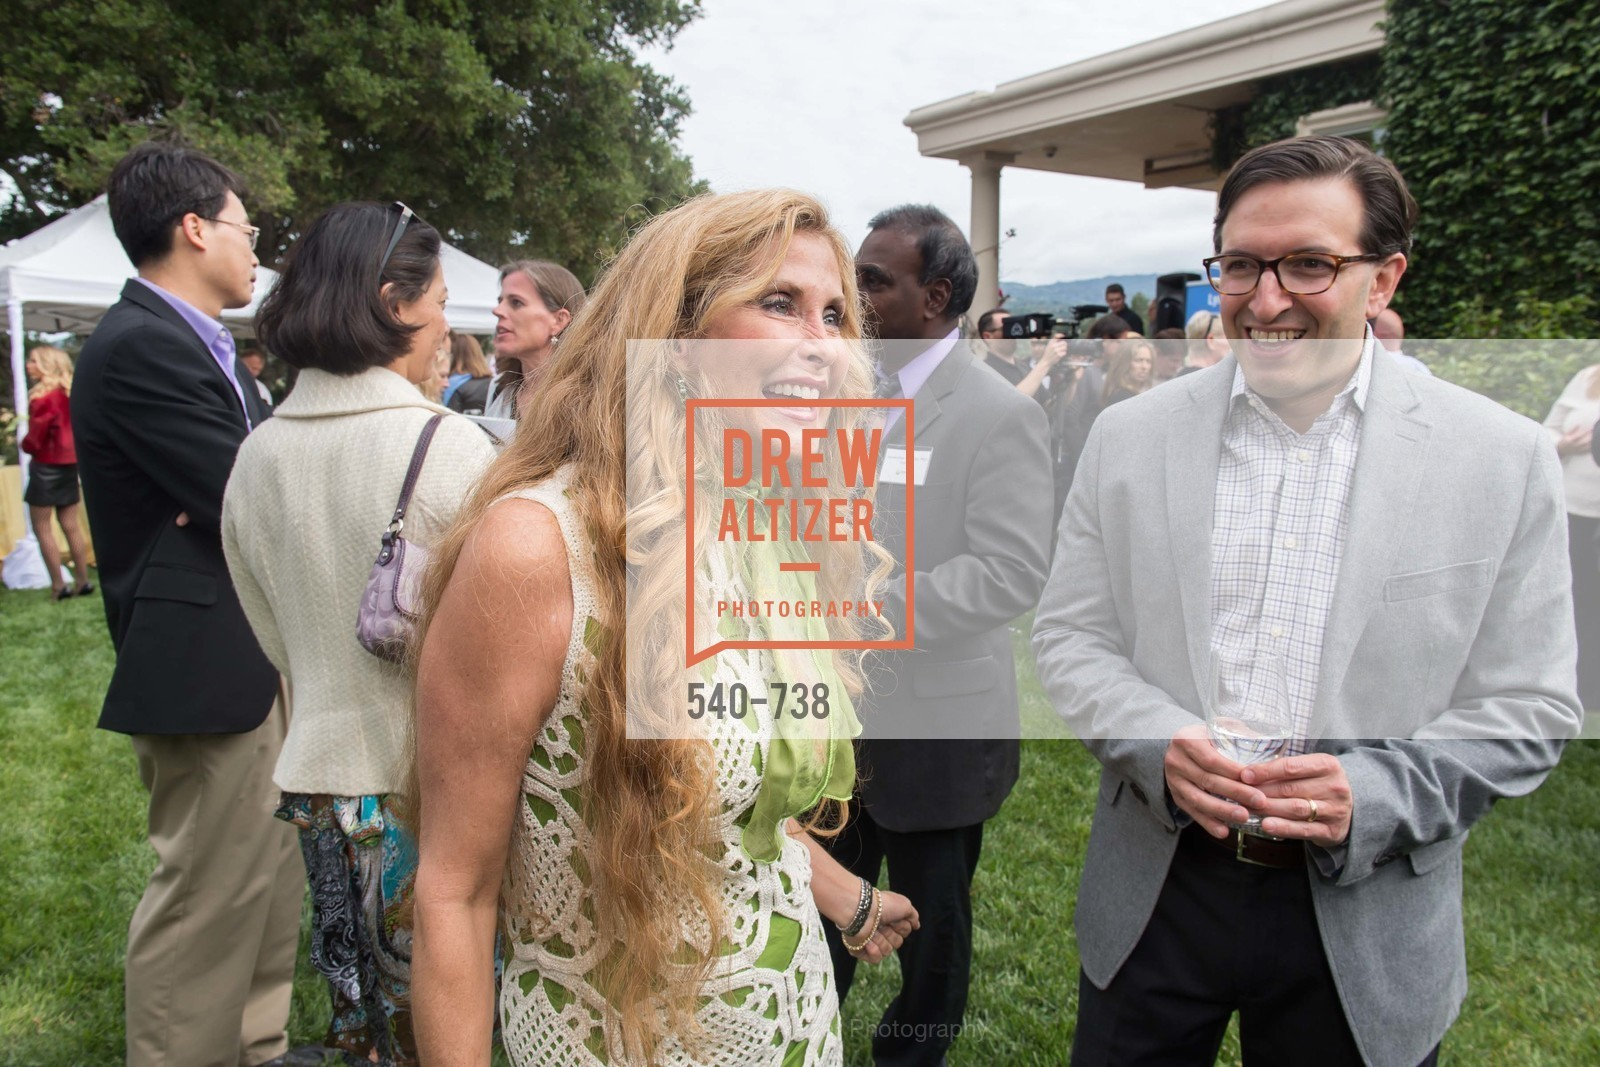 Sherry Cagan, Amir Rubin, LymeAid 2015, US, May 18th, 2015,Drew Altizer, Drew Altizer Photography, full-service agency, private events, San Francisco photographer, photographer california